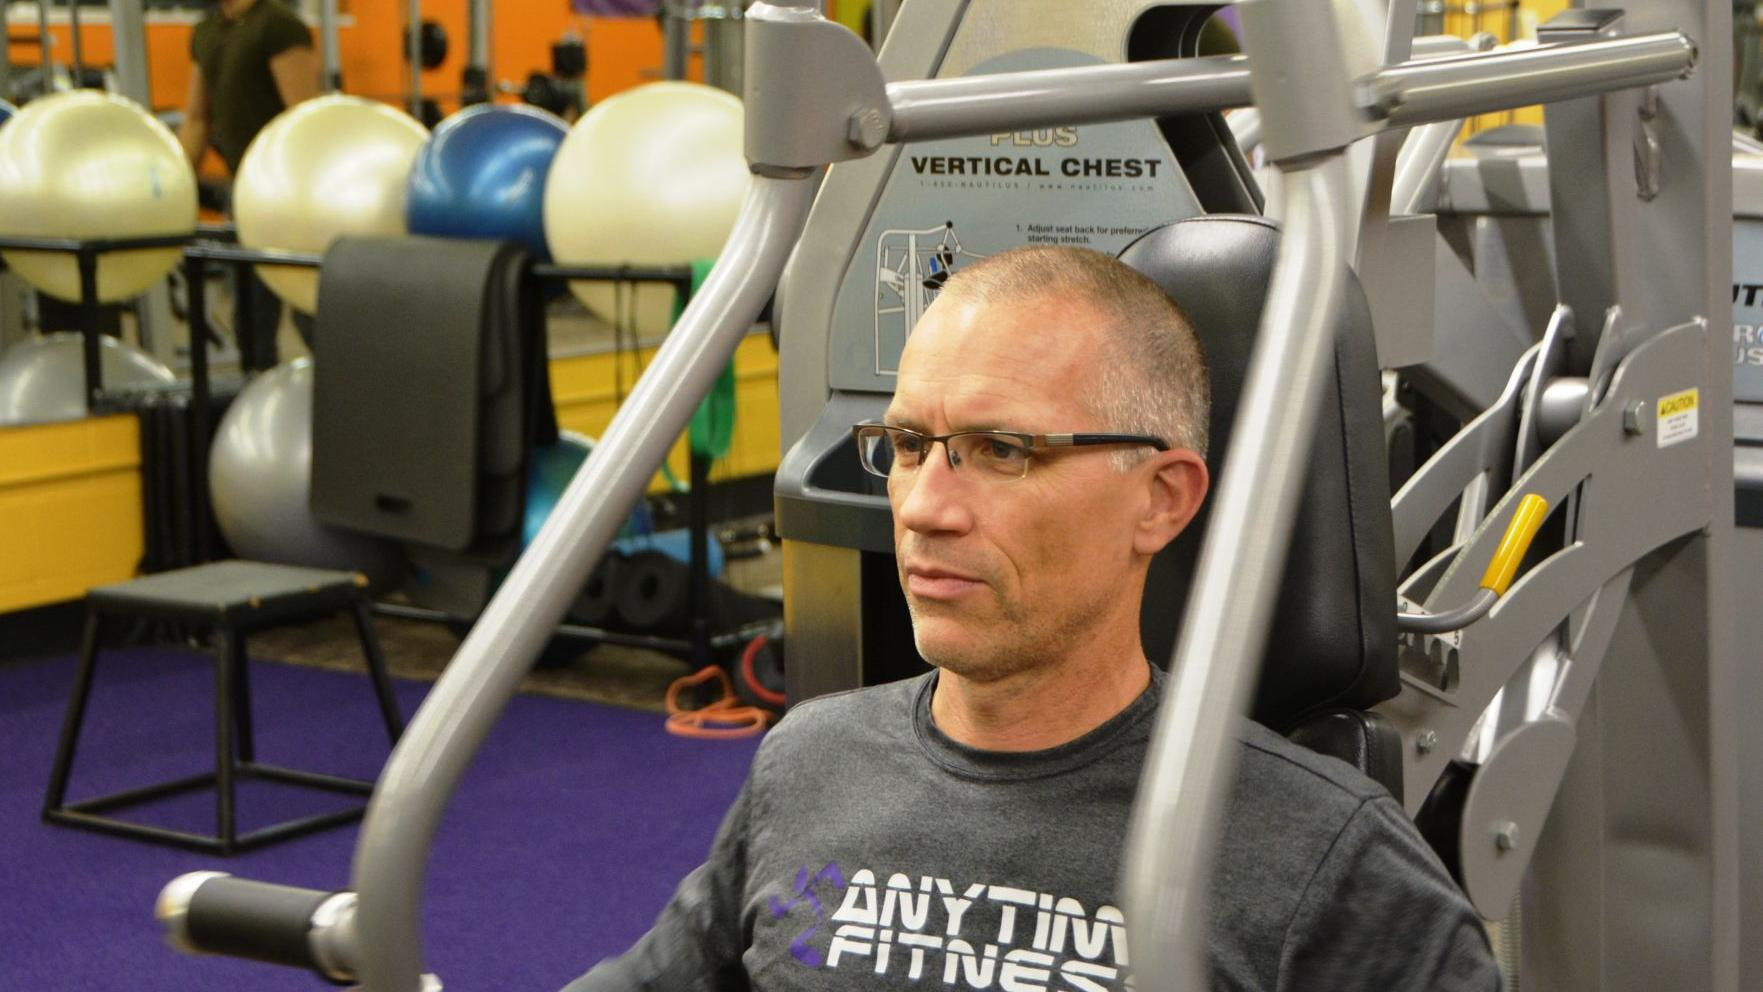 24-hour workout raises $1,700 for kids in need